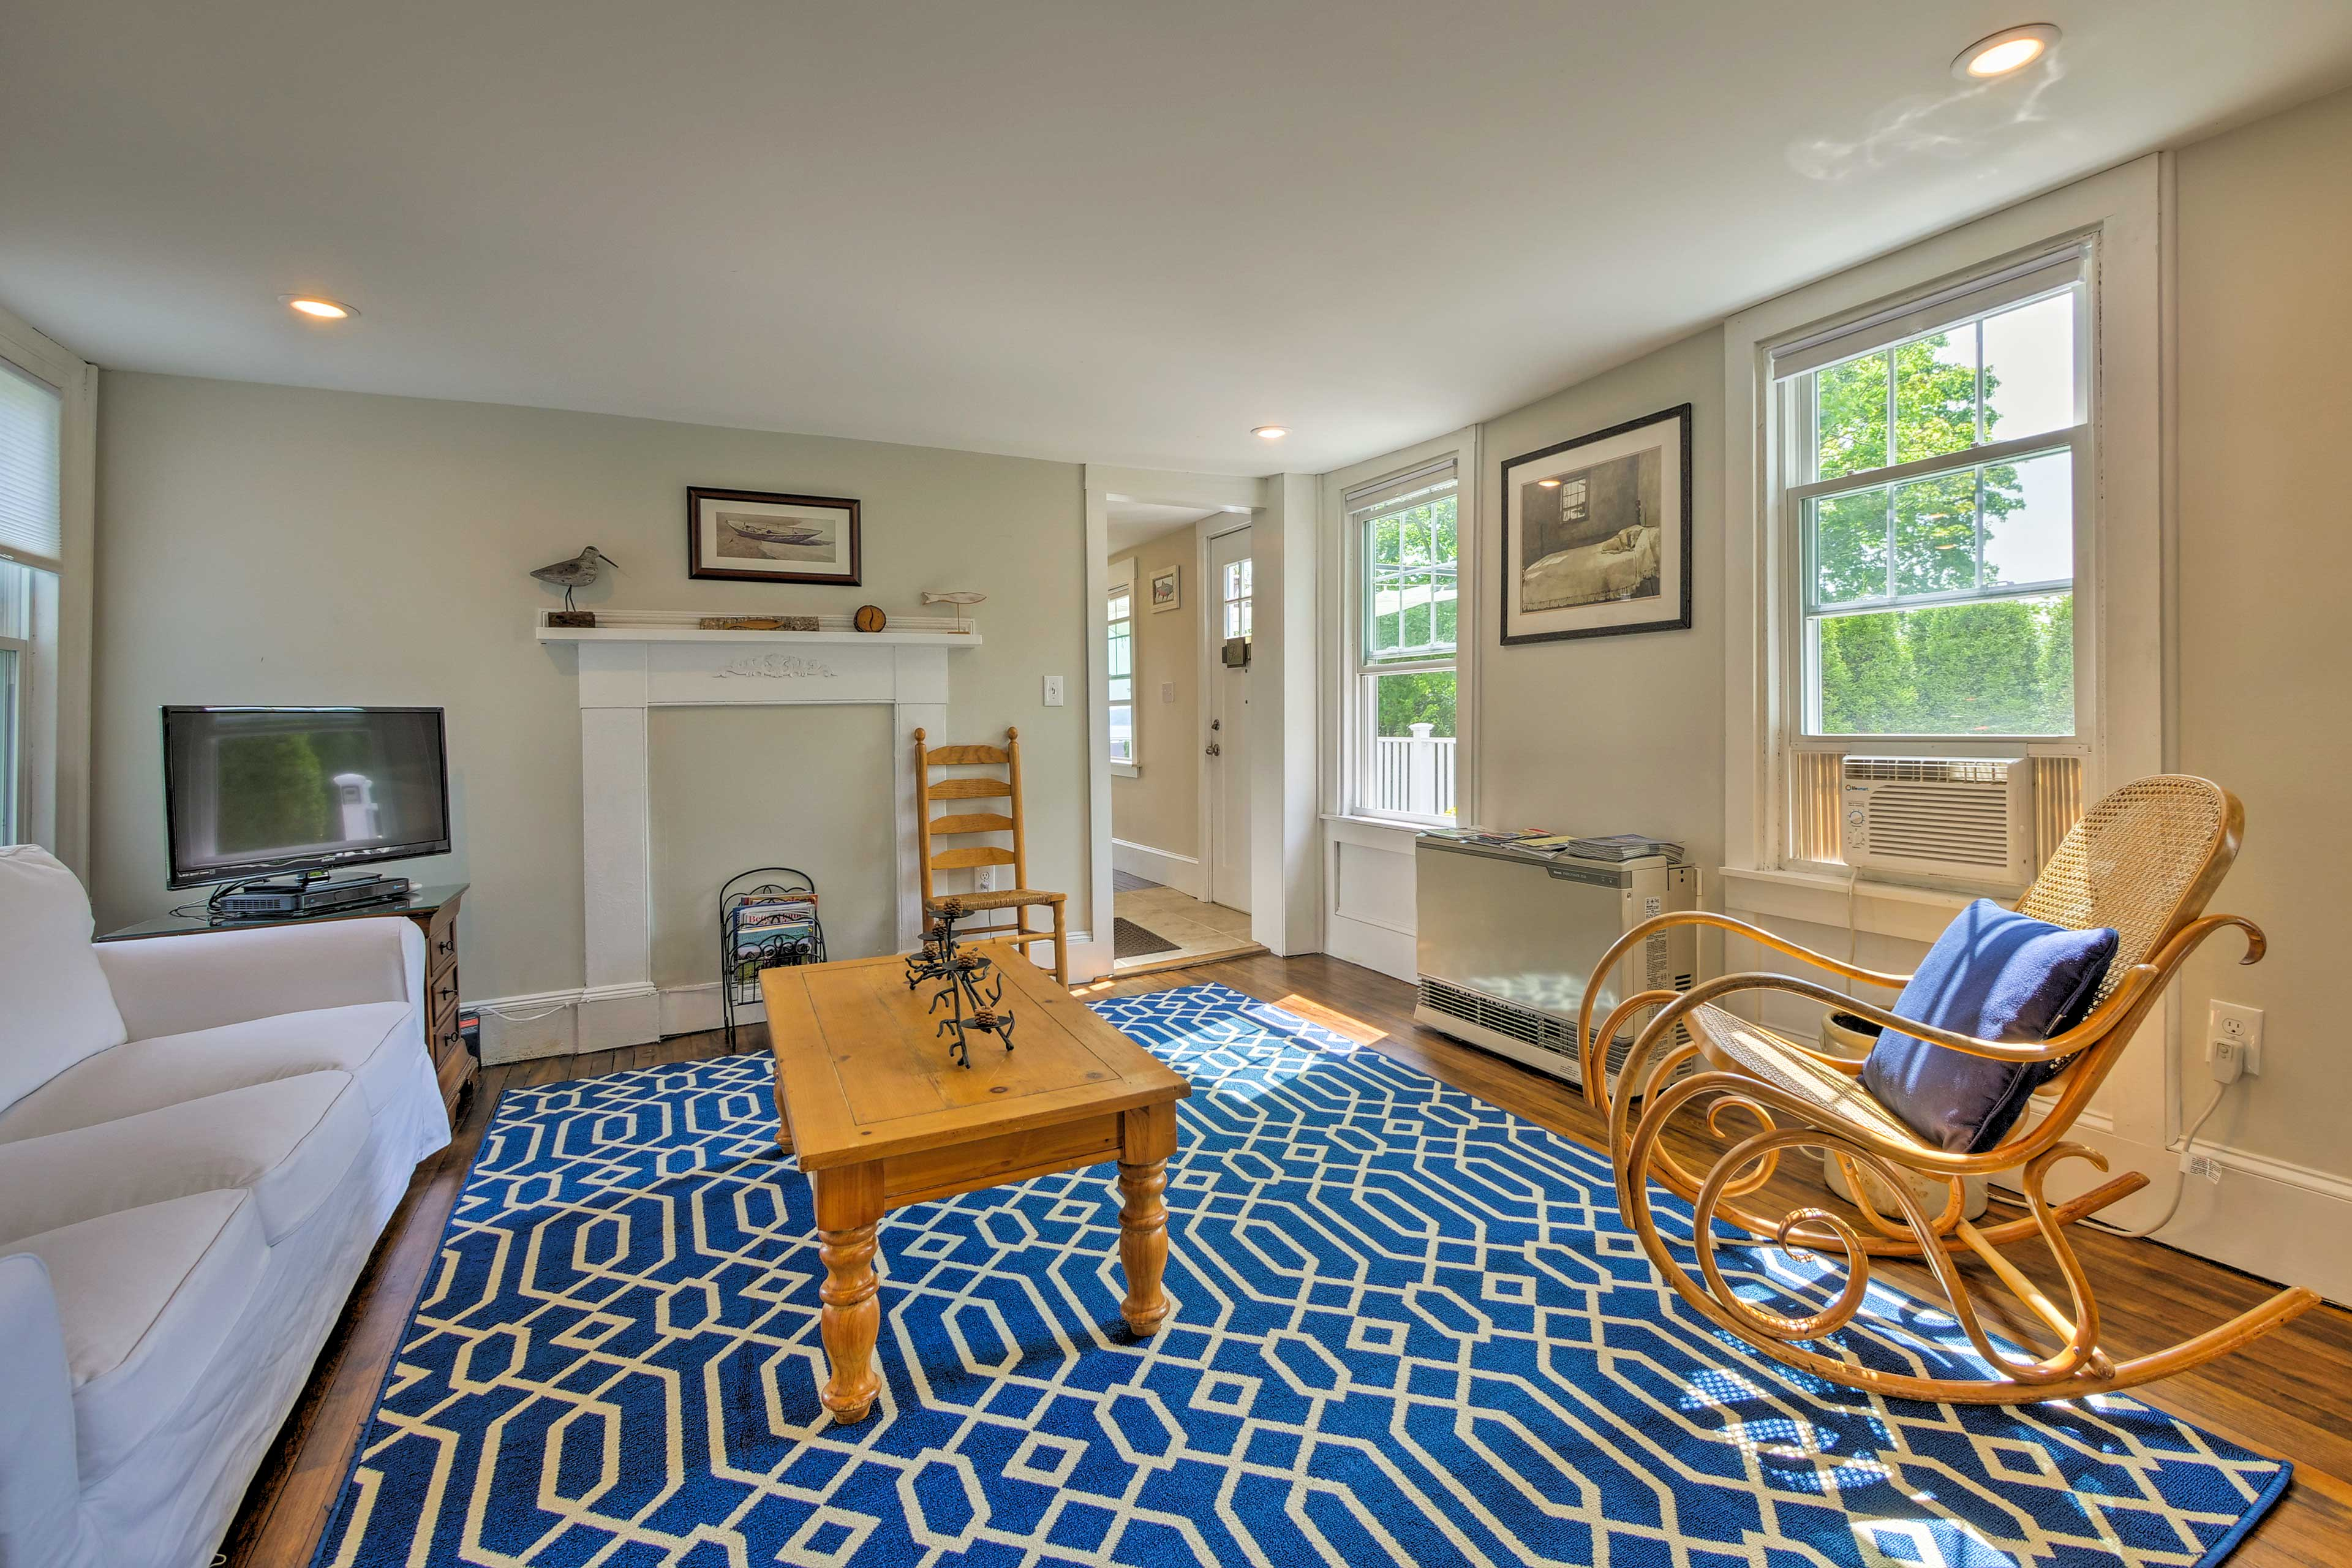 This home maintains a balance of old-world charm and updated amenities.